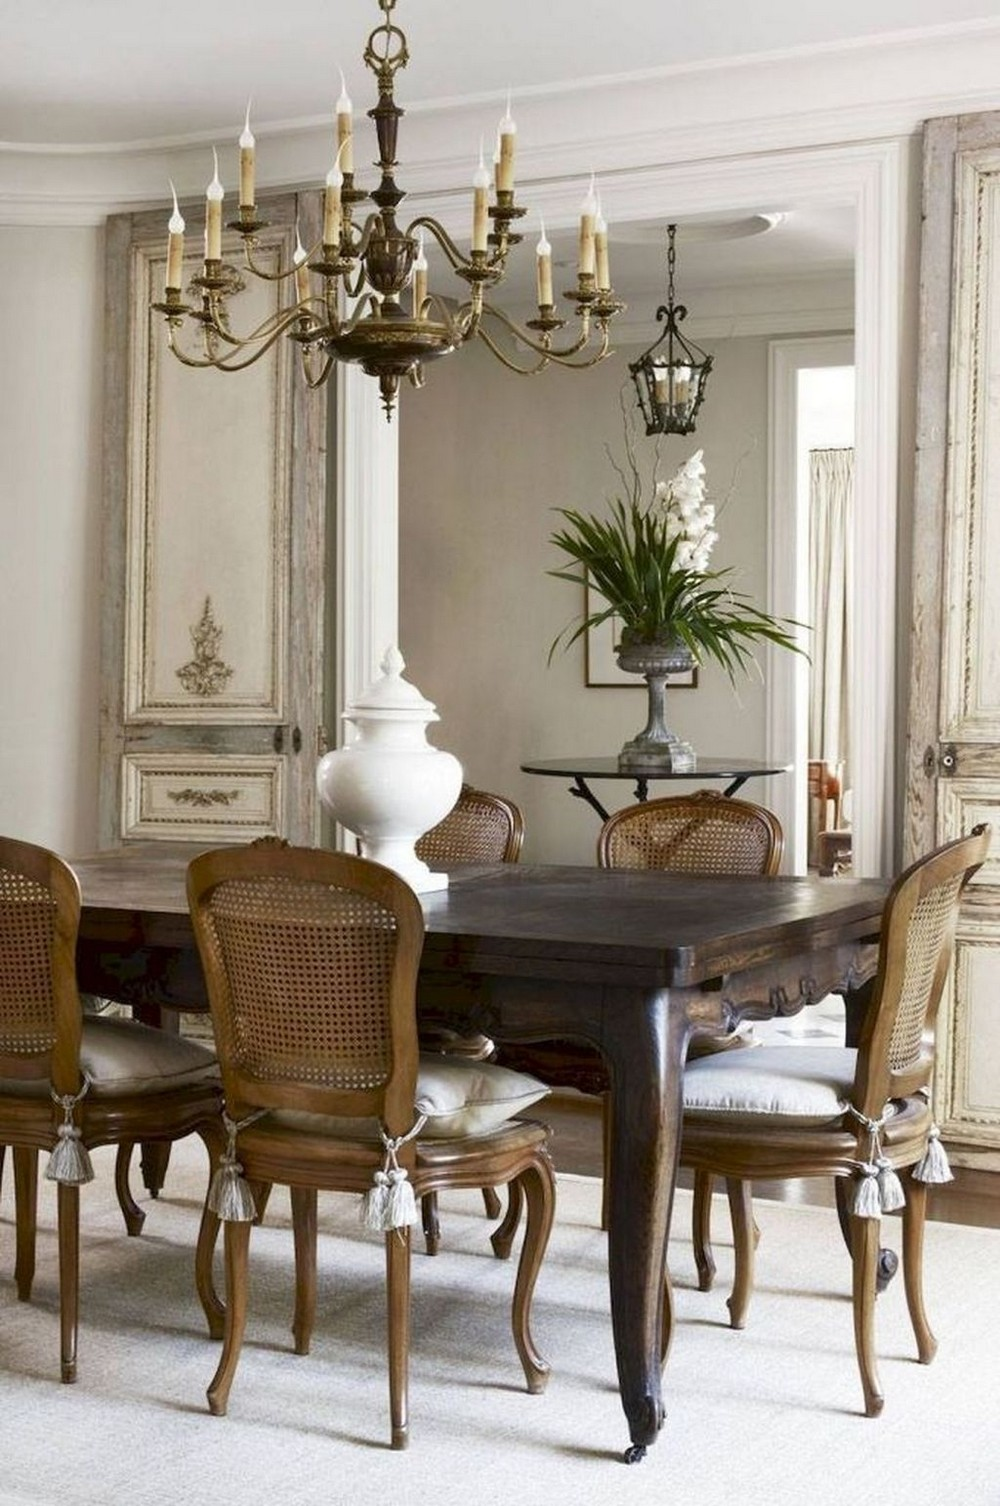 An Unparalleled Devotion to Detail: Dining Rooms by Julie Charbonneau julie charbonneau An Unparalleled Devotion to Detail: Dining Rooms by Julie Charbonneau 3 HOMYHOMEE